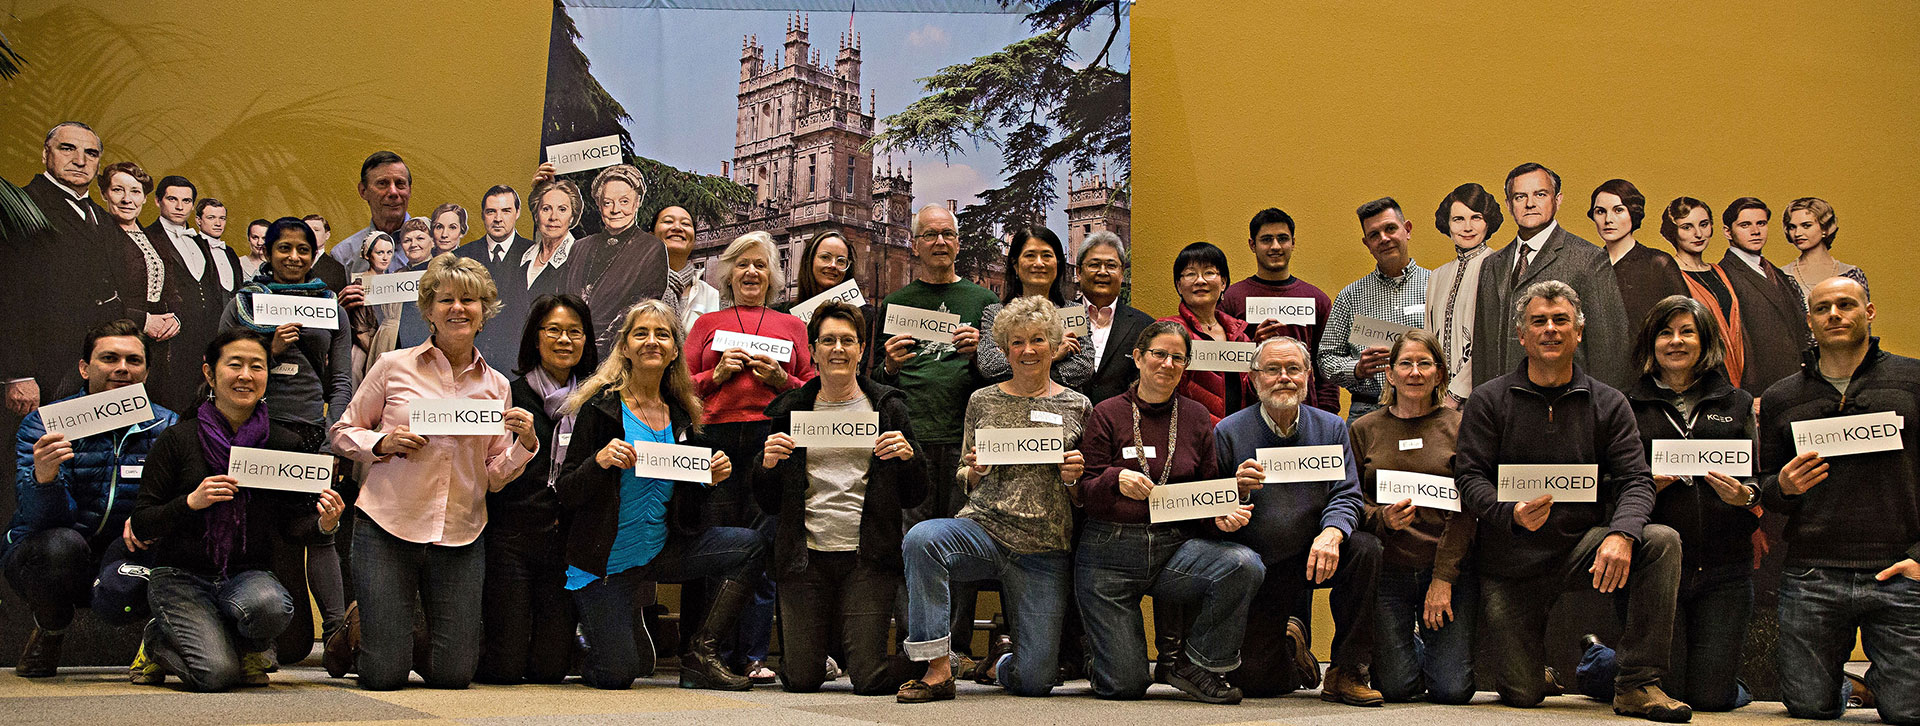 KQED Pledge Volunteers Standing in front of Downton Abbey backdrop